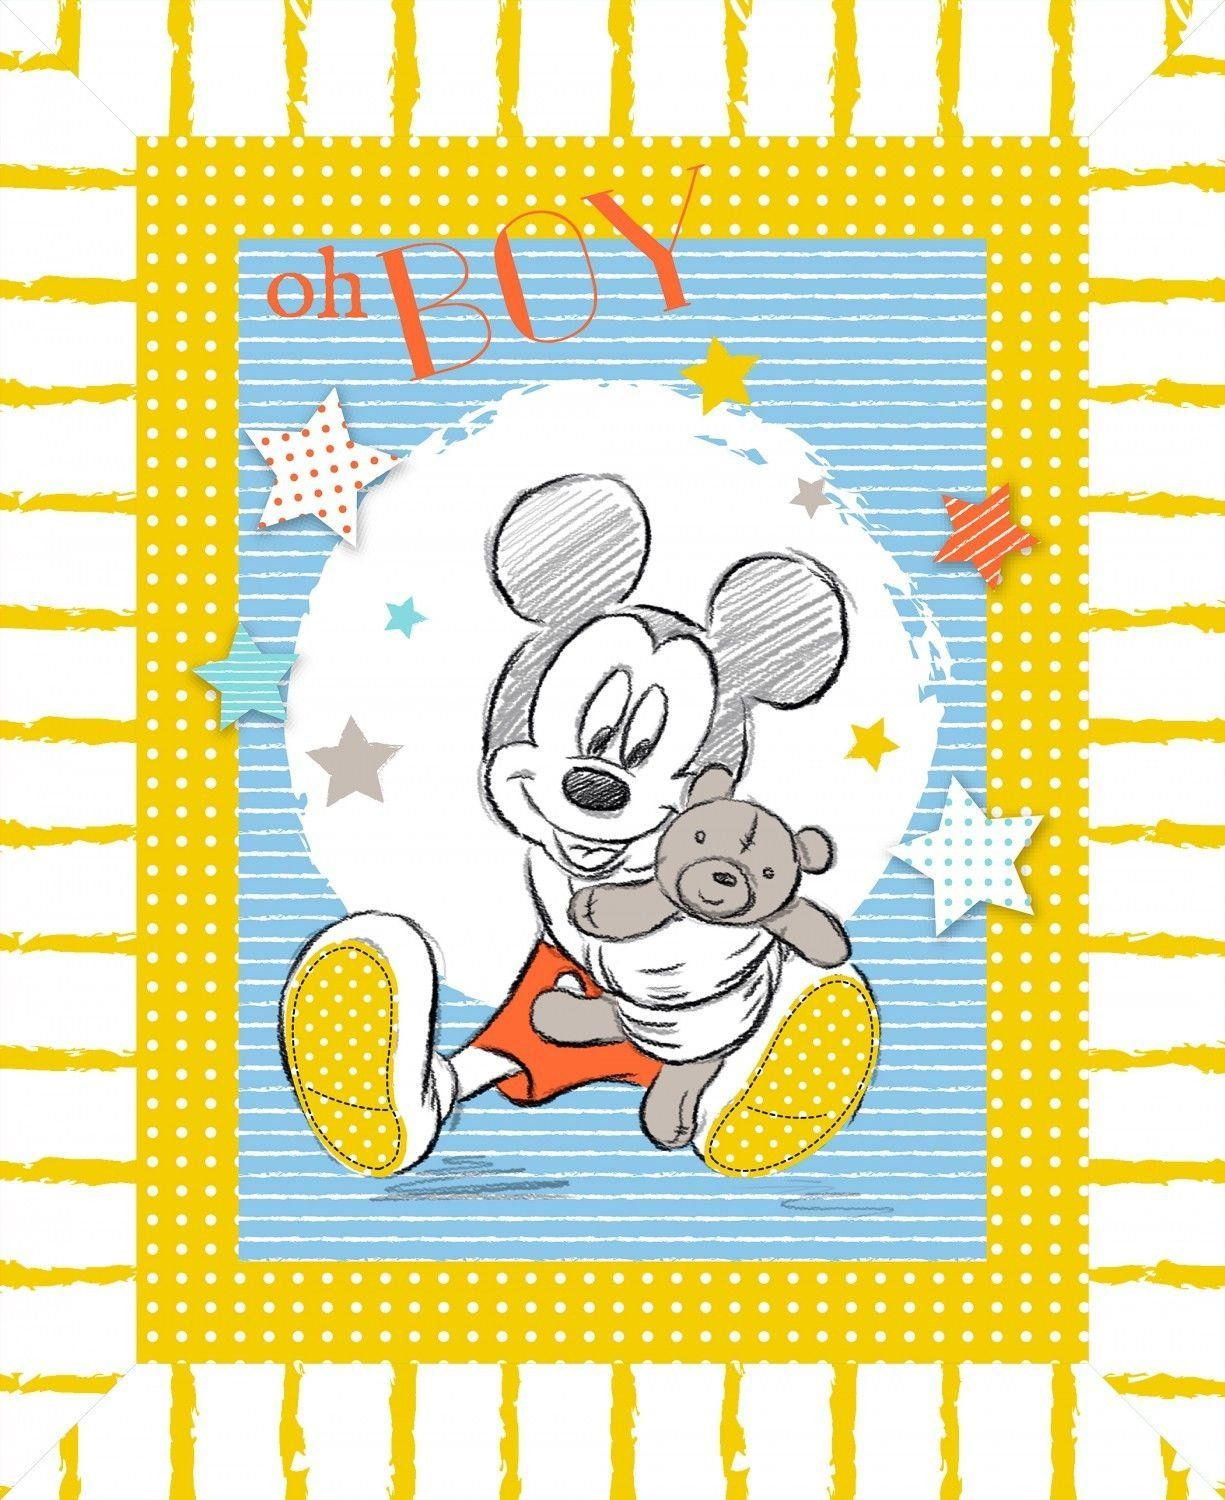 Minnie Mouse Cotton Fabric Panel Great for Quilting, Sewing, Craft Projects, a Childs Quilt /& More 44 x 35 Wide